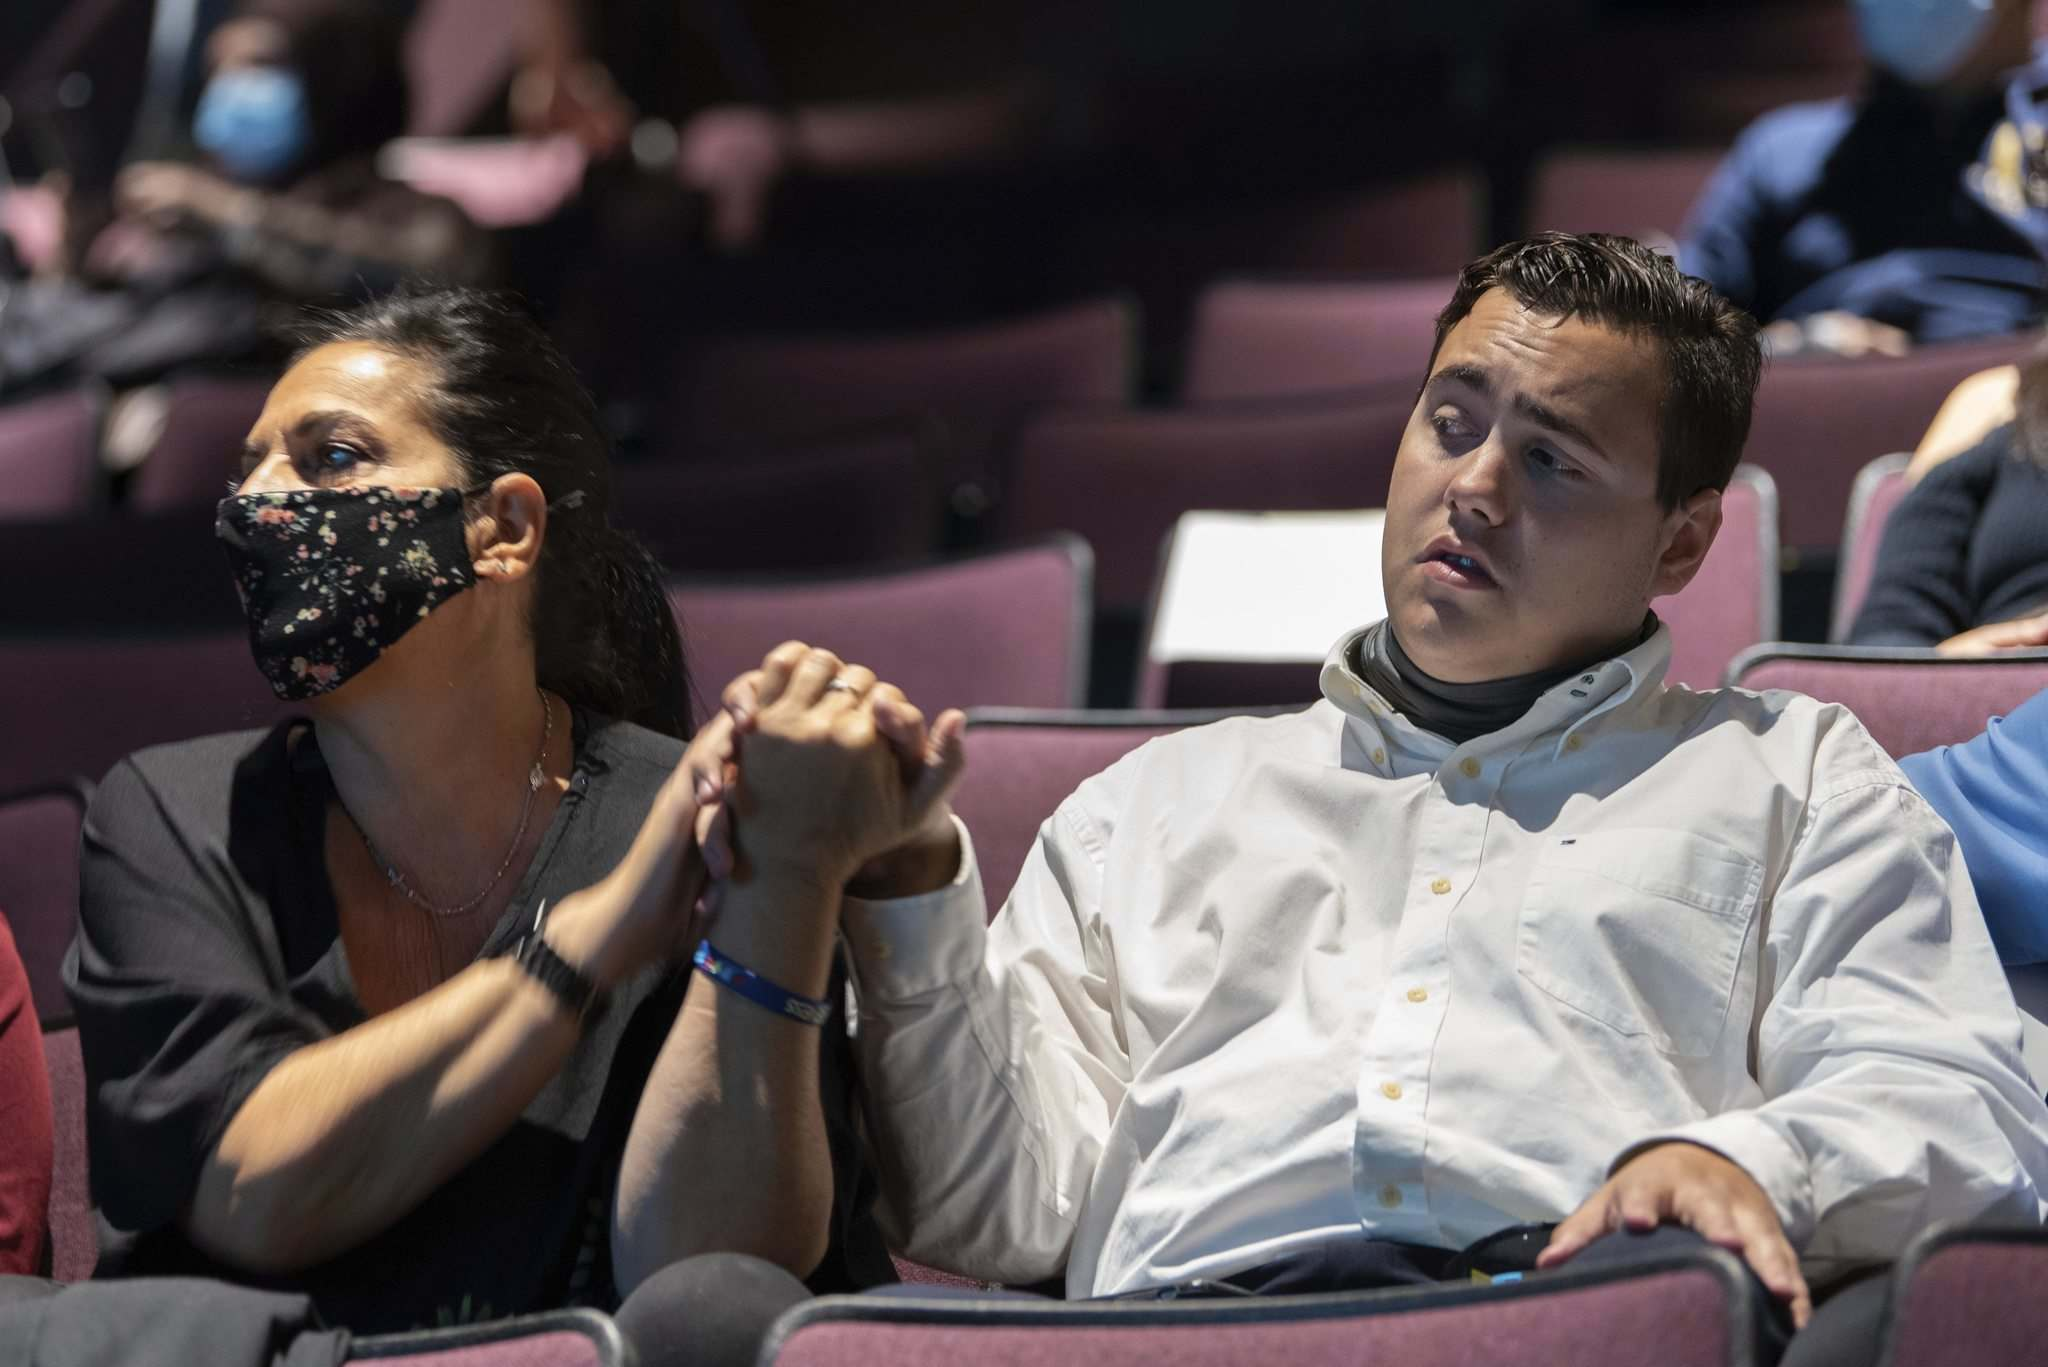 JESSE BOILY / WINNIPEG FREE PRESS</p><p>Sam Mercier prepares to hear the good news Wednesday night alongside mother Linda. The Grade 11 student at St. Maurice School won the top prize at the Diverse Minds competition for his story 'My Name is Sam and Yes I can!'</p></p>